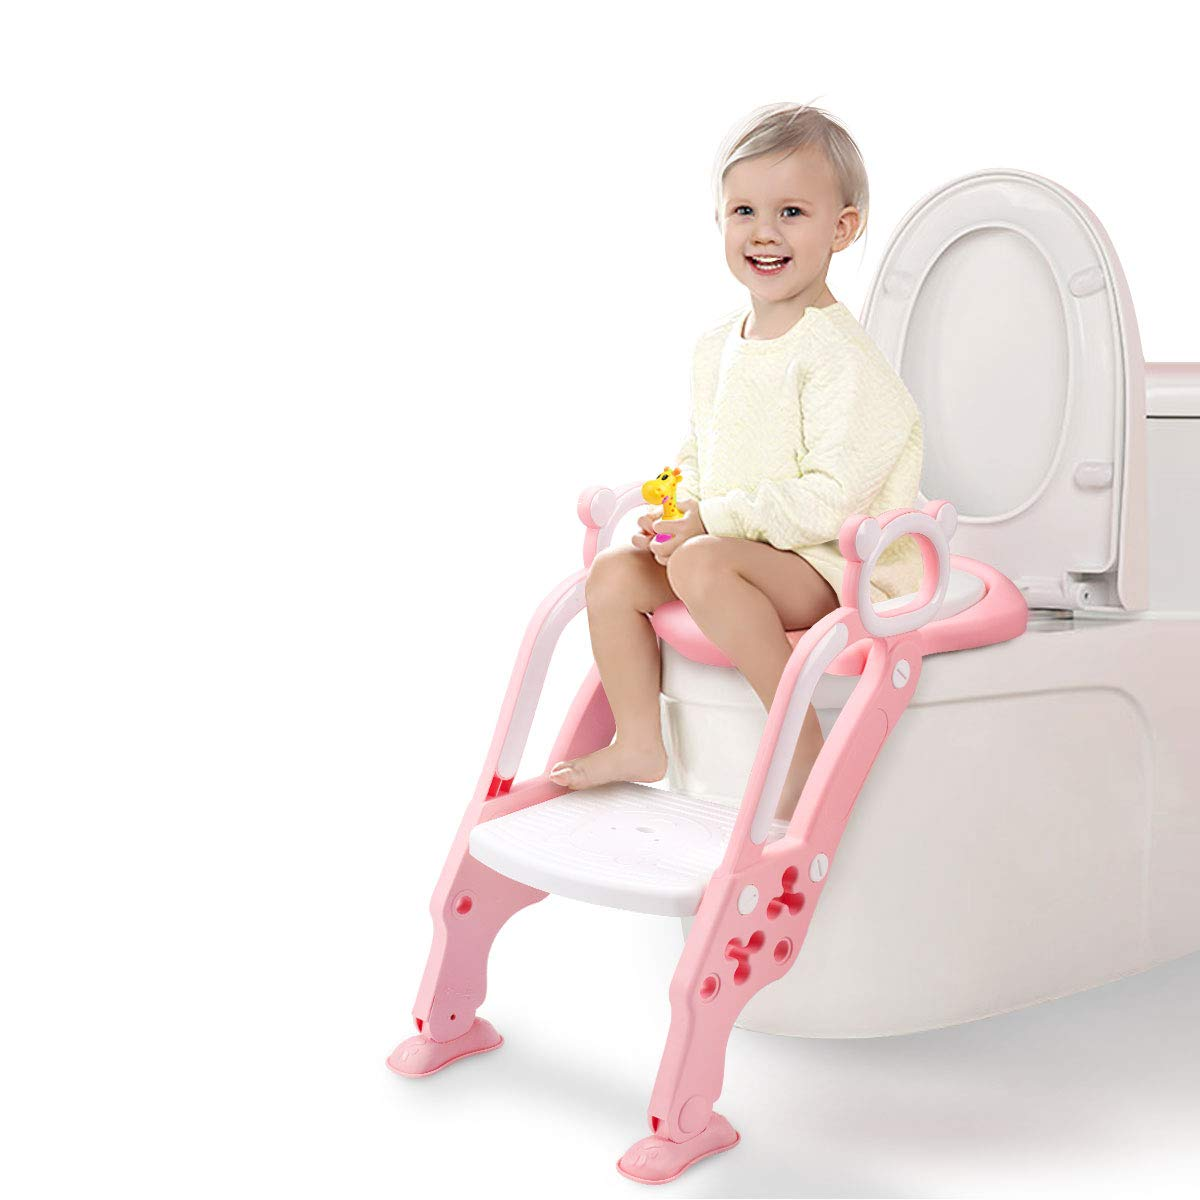 GrowthPic Toddler Toilet Training Seat Ladder with Sturdy Non-Slip Wide Step and Soft Cushion for Girls by GrowthPic